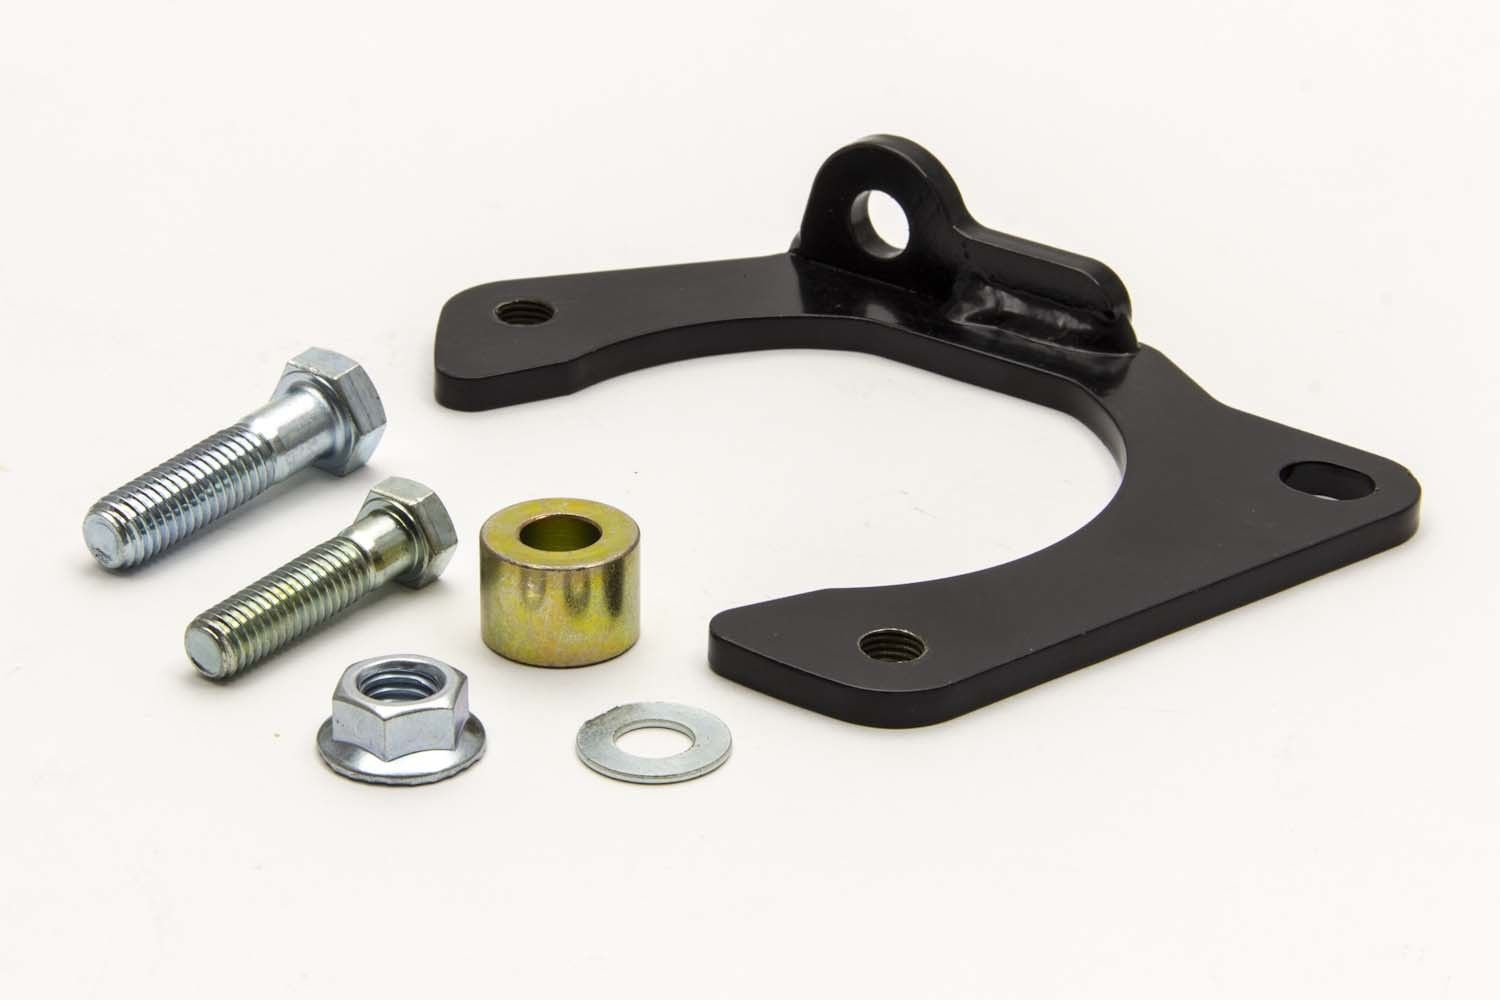 Caliper Brkt for Hybrid Rotor AFCO RACING PRODUCTS 40122PR